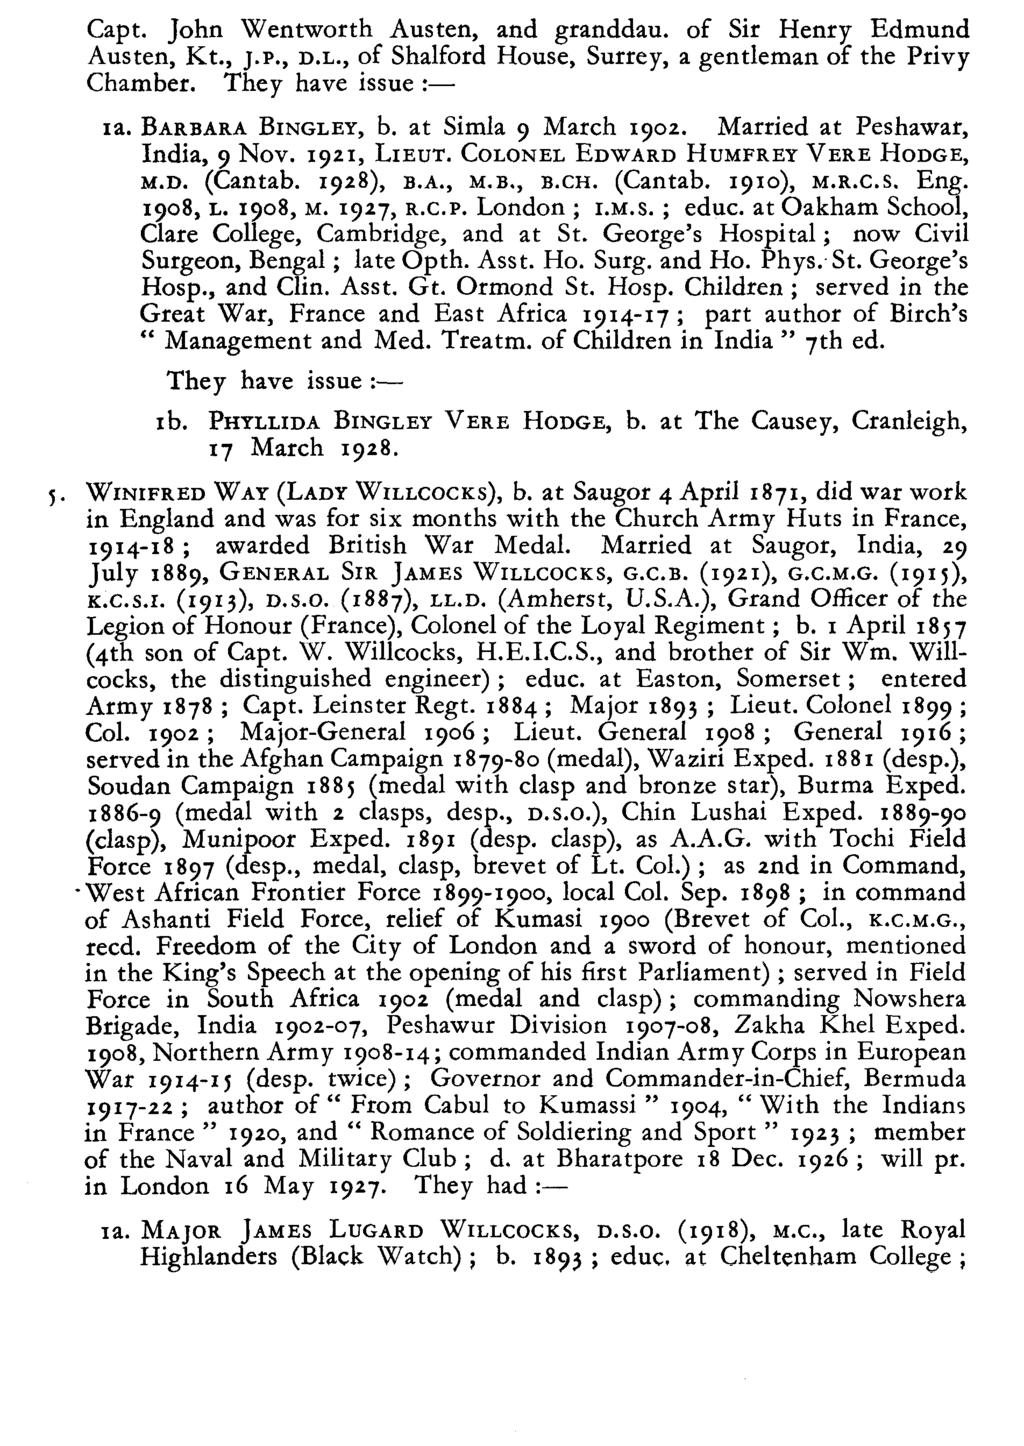 Capt. John Wentworth Austen, and granddau. of Sir Henry Edmund Austen, Kt., J.P., D.L., of Shalford House, Surrey, a gentleman of the Privy Chamber. They have issue :- a. BARBARA BNGLEY, b.